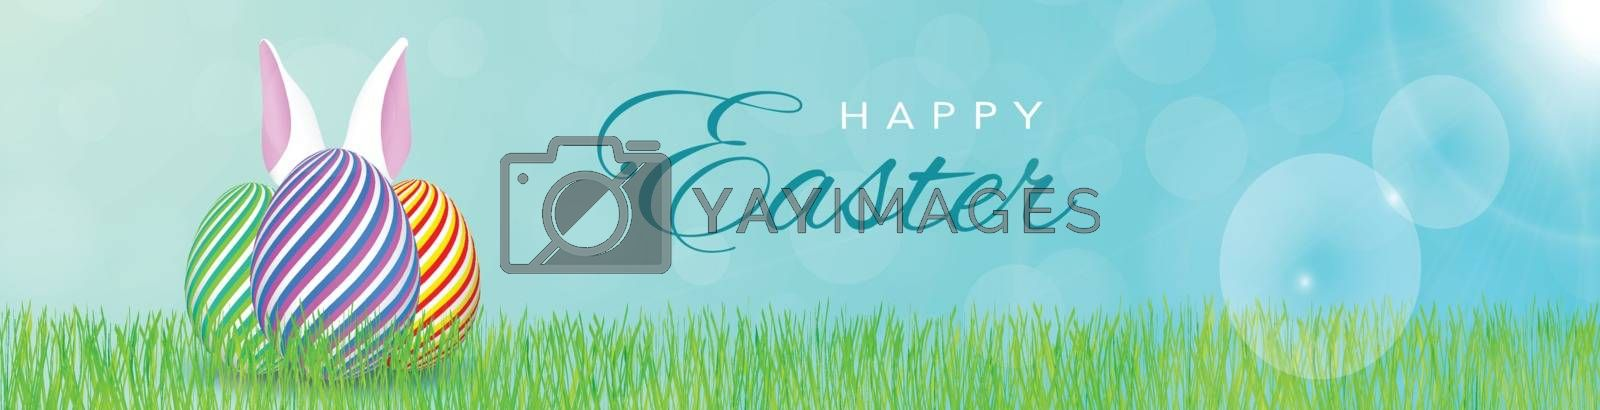 Holiday banner with sunshine. White bunny ears behind the striped eggs in the grass. Greeting text in the middle. Bokeh effect in the background.